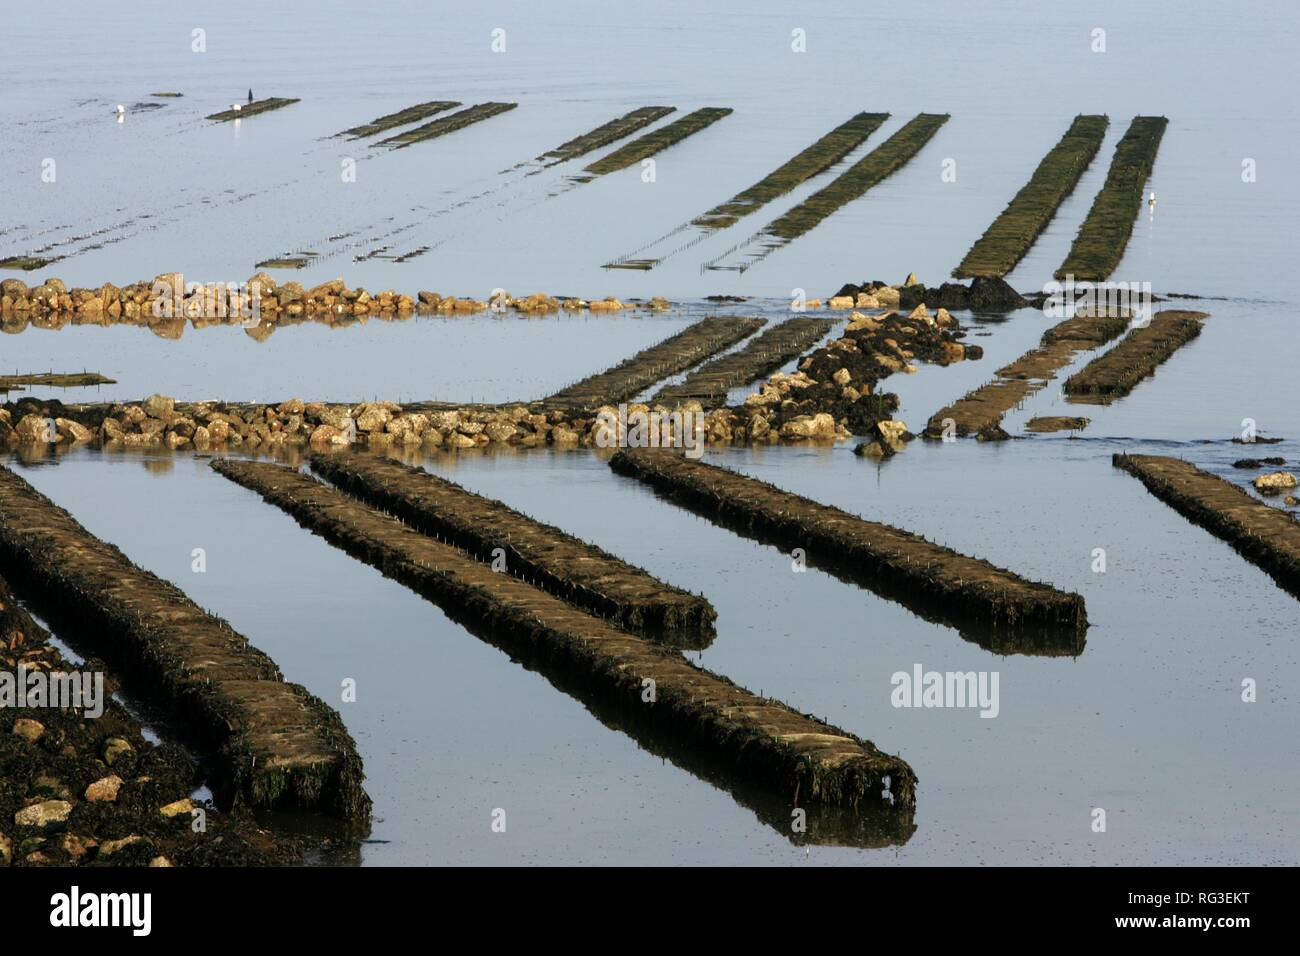 FRA, France, Normandy: Oyster farm of St. Vaast la Hougue. Stock Photo